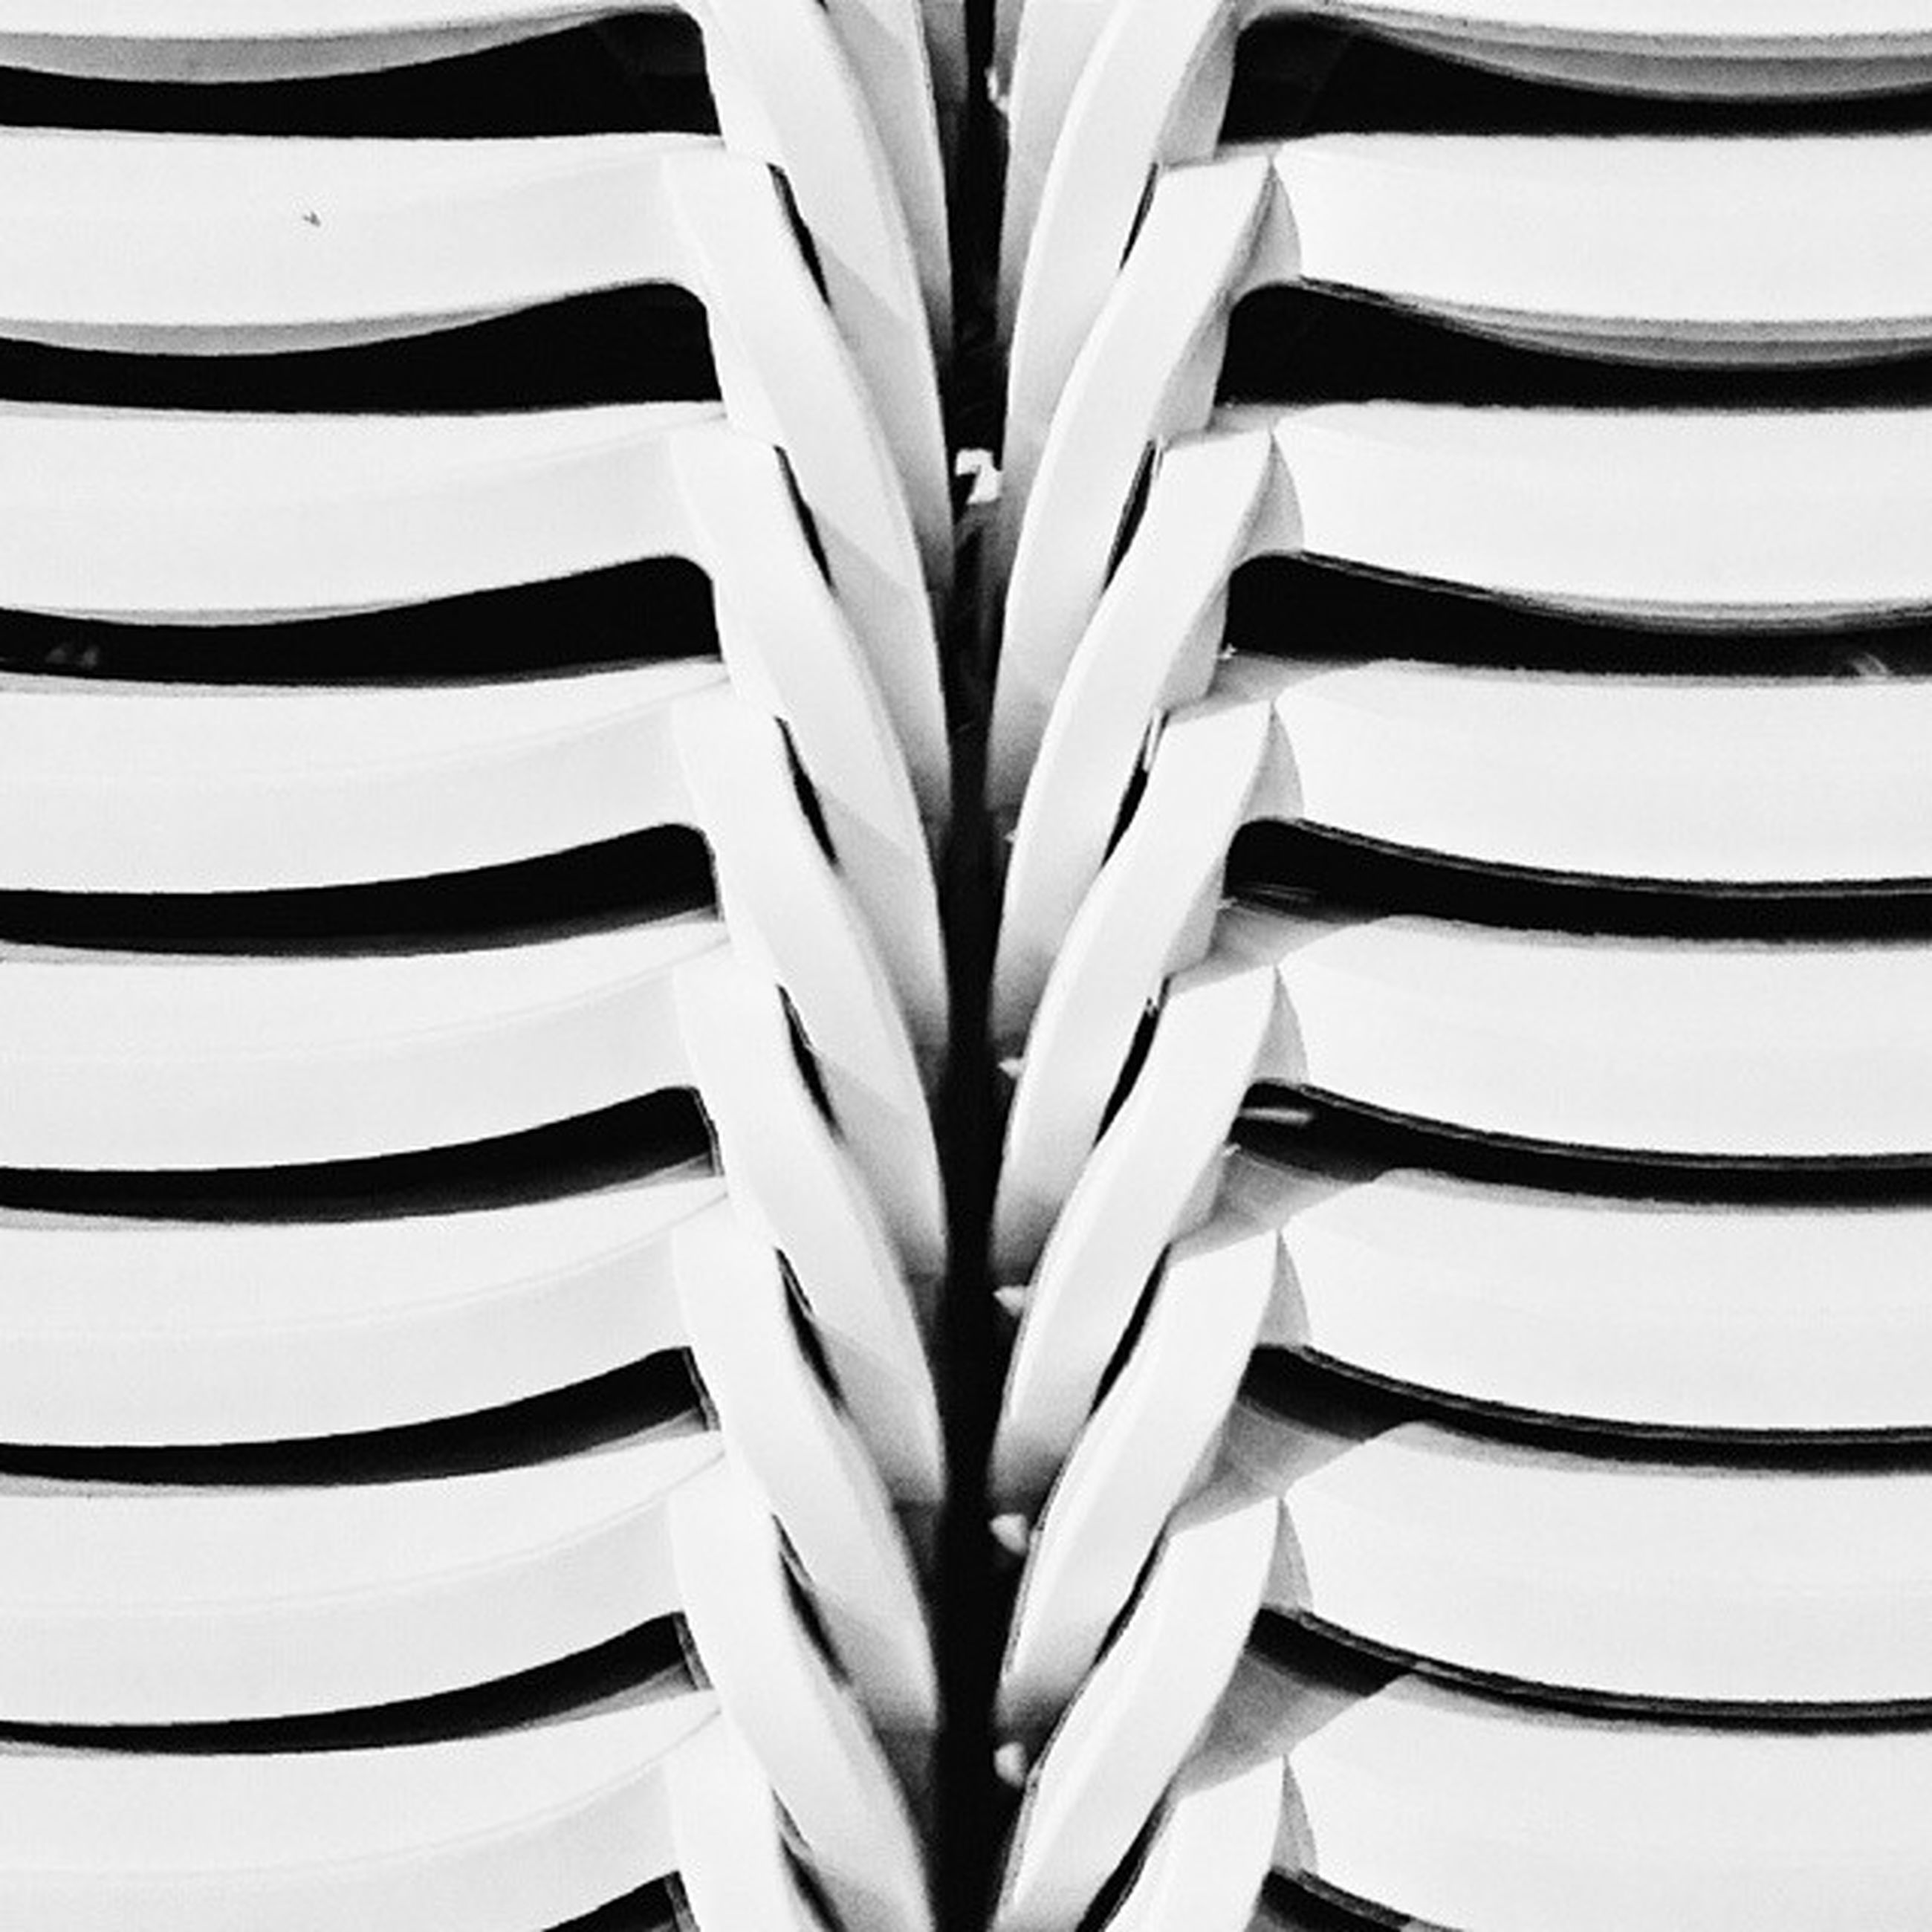 full frame, backgrounds, pattern, design, repetition, abstract, close-up, in a row, low angle view, detail, textured, no people, part of, white color, spiral, shape, day, indoors, building exterior, studio shot